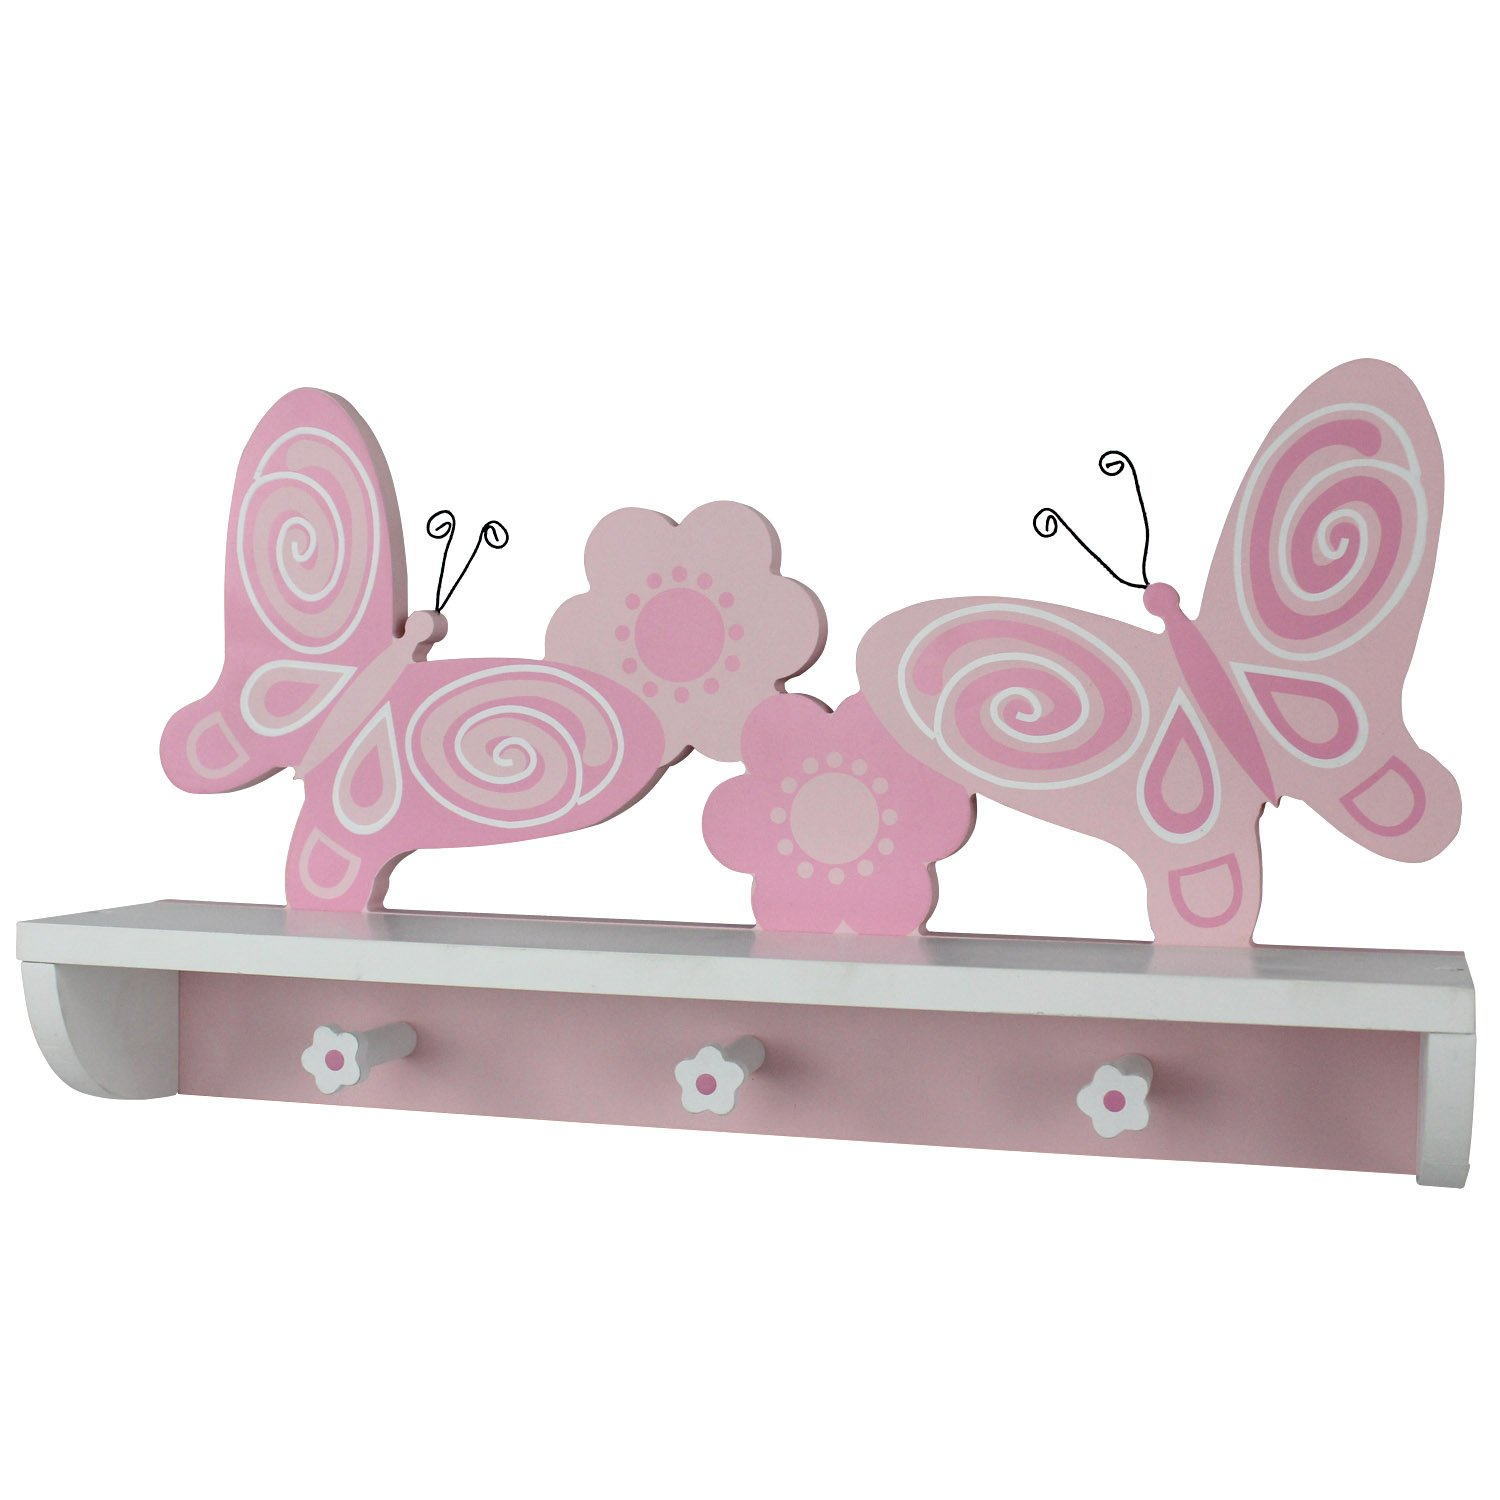 Hoddmimis wall shelf coat hooks children wooden decorative purple op bcr uxx ebay - Kids decorative wall hooks ...